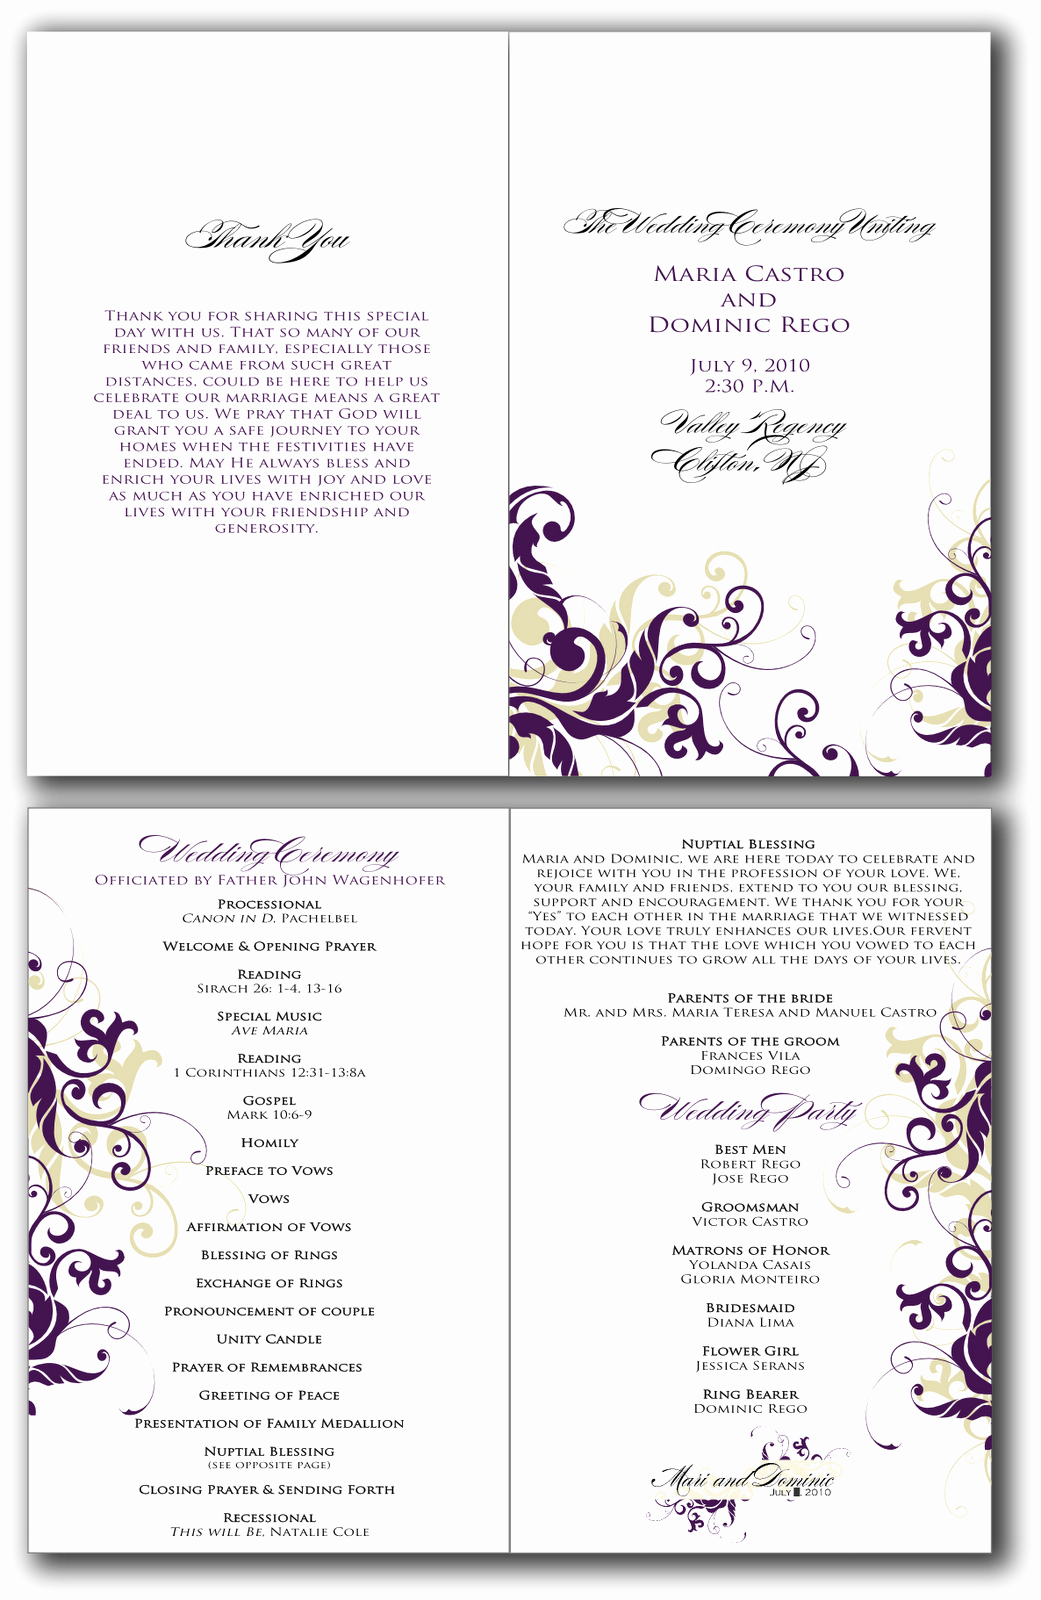 Wedding Program Template Free Printable Awesome 8 Best Of Free Printable Church Program Design